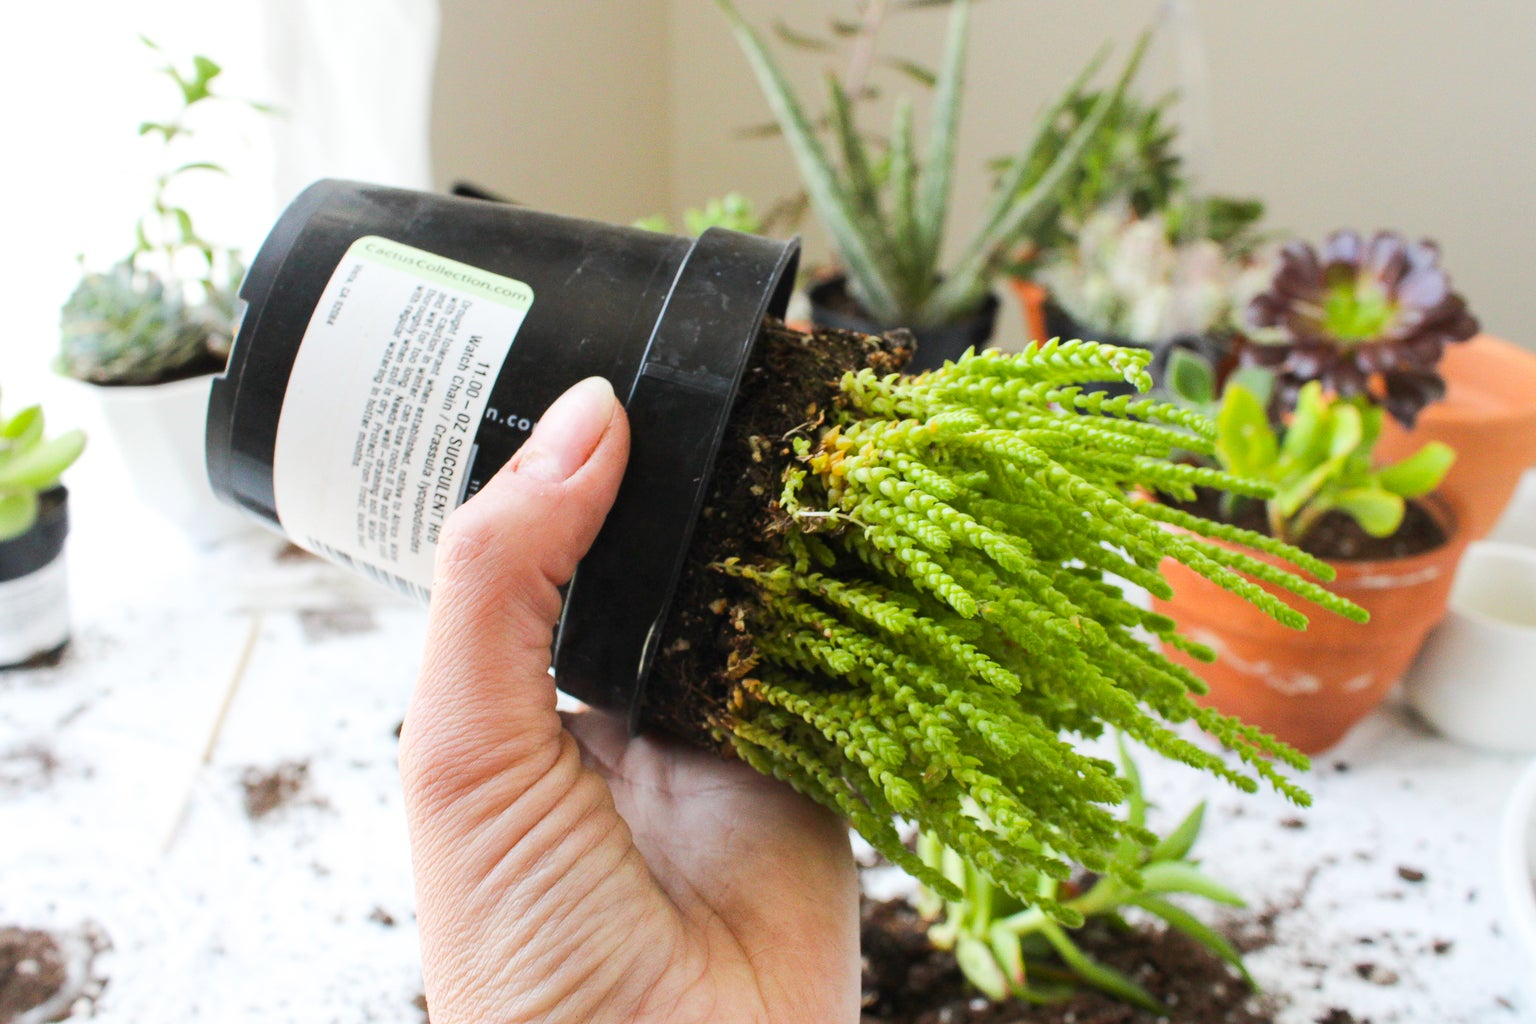 How to Remove Plants From a Plastic Pot